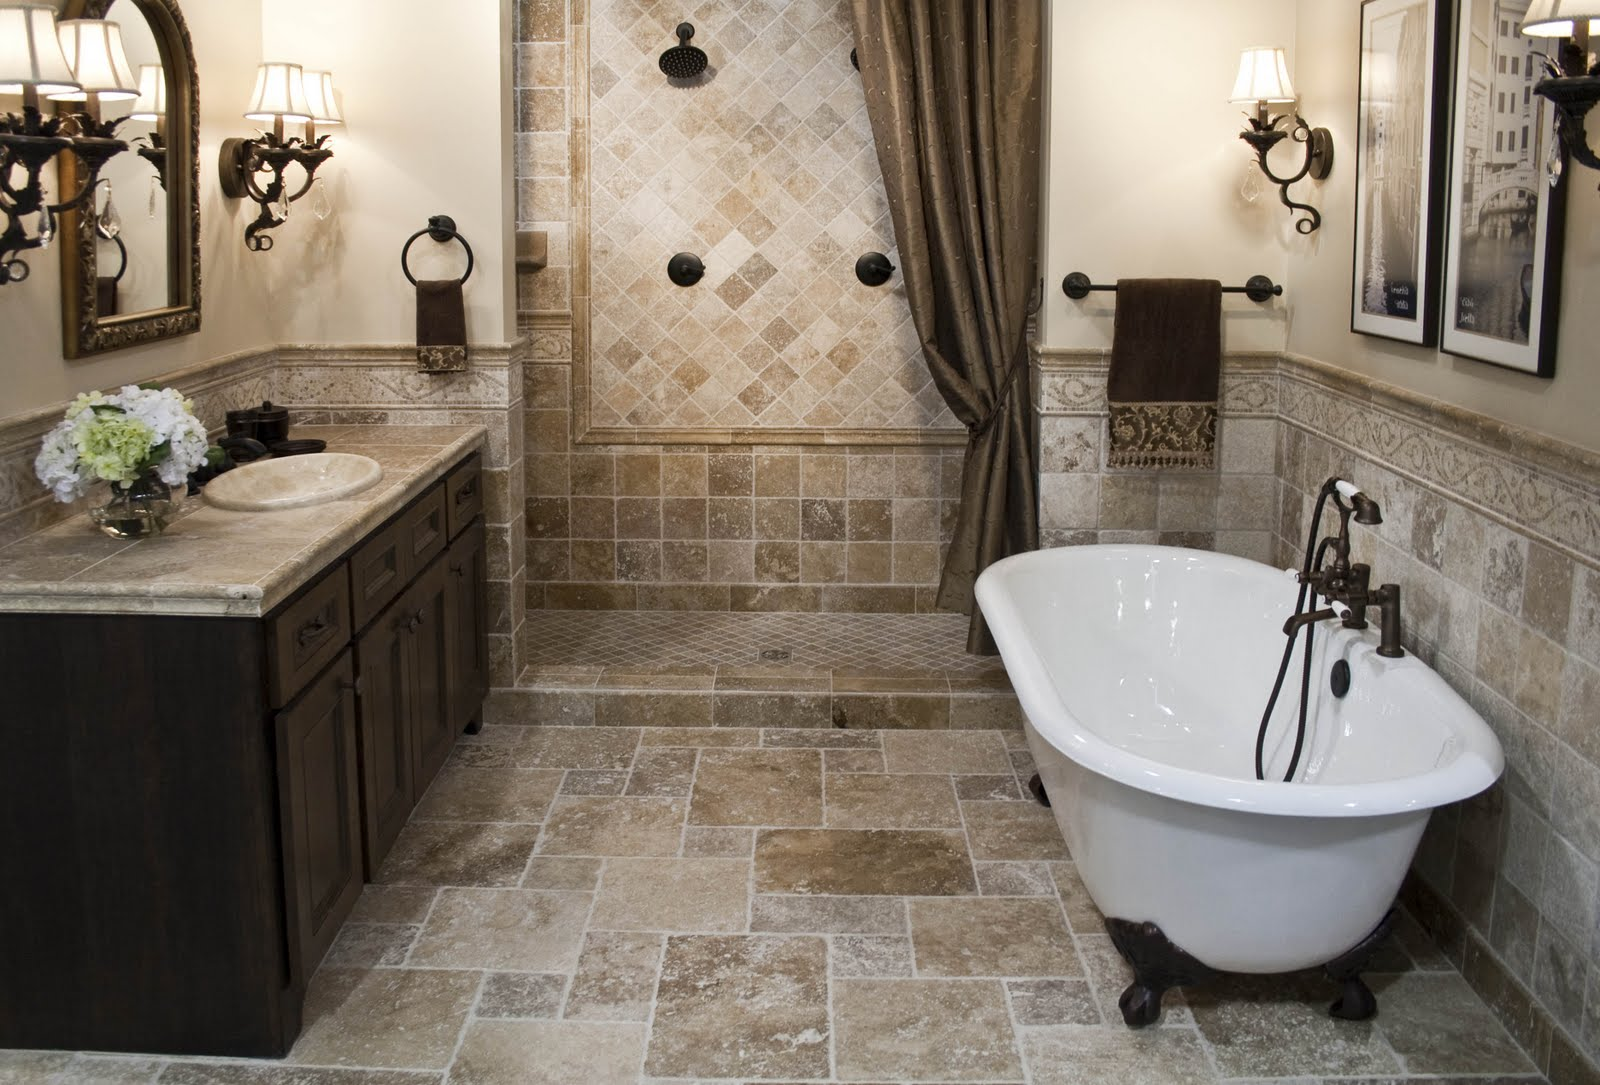 Bathroom Renovation Diy tips for diy bathroom renovations on a budget